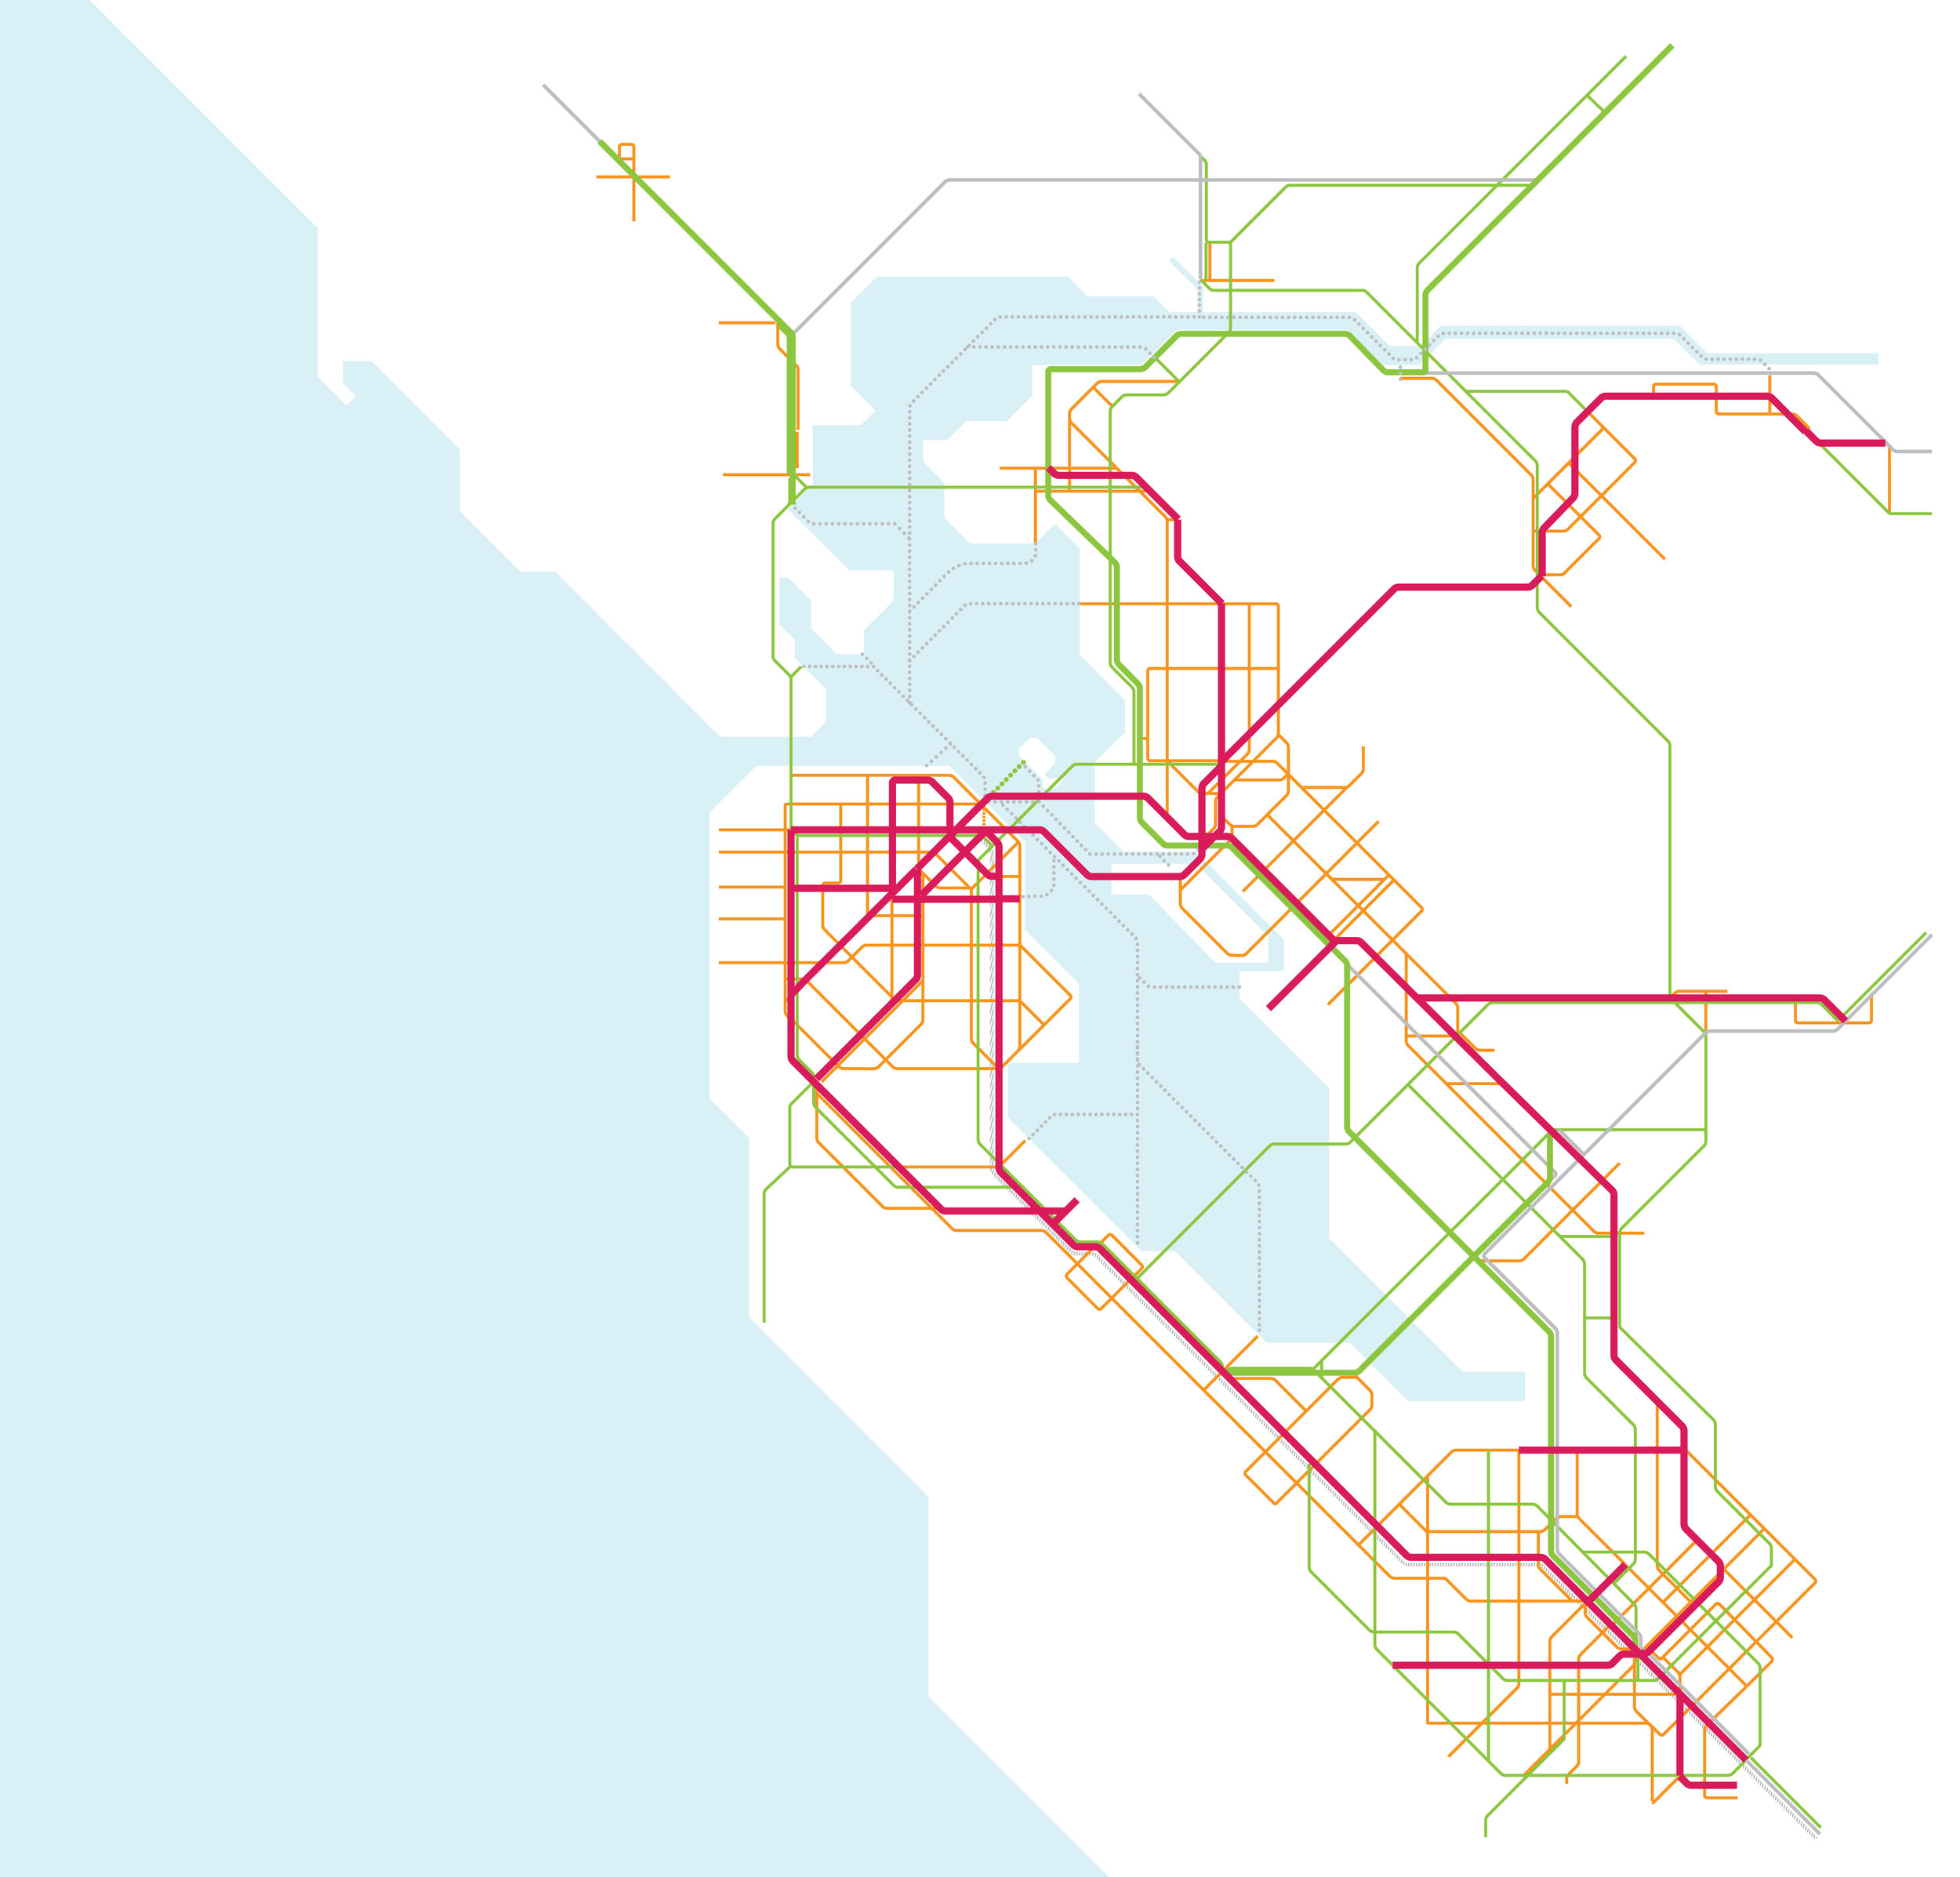 Increase bus service to create a network of rapid bus lines that bypass traffic on major streets throughout the Bay Area, connecting to regional hubs;